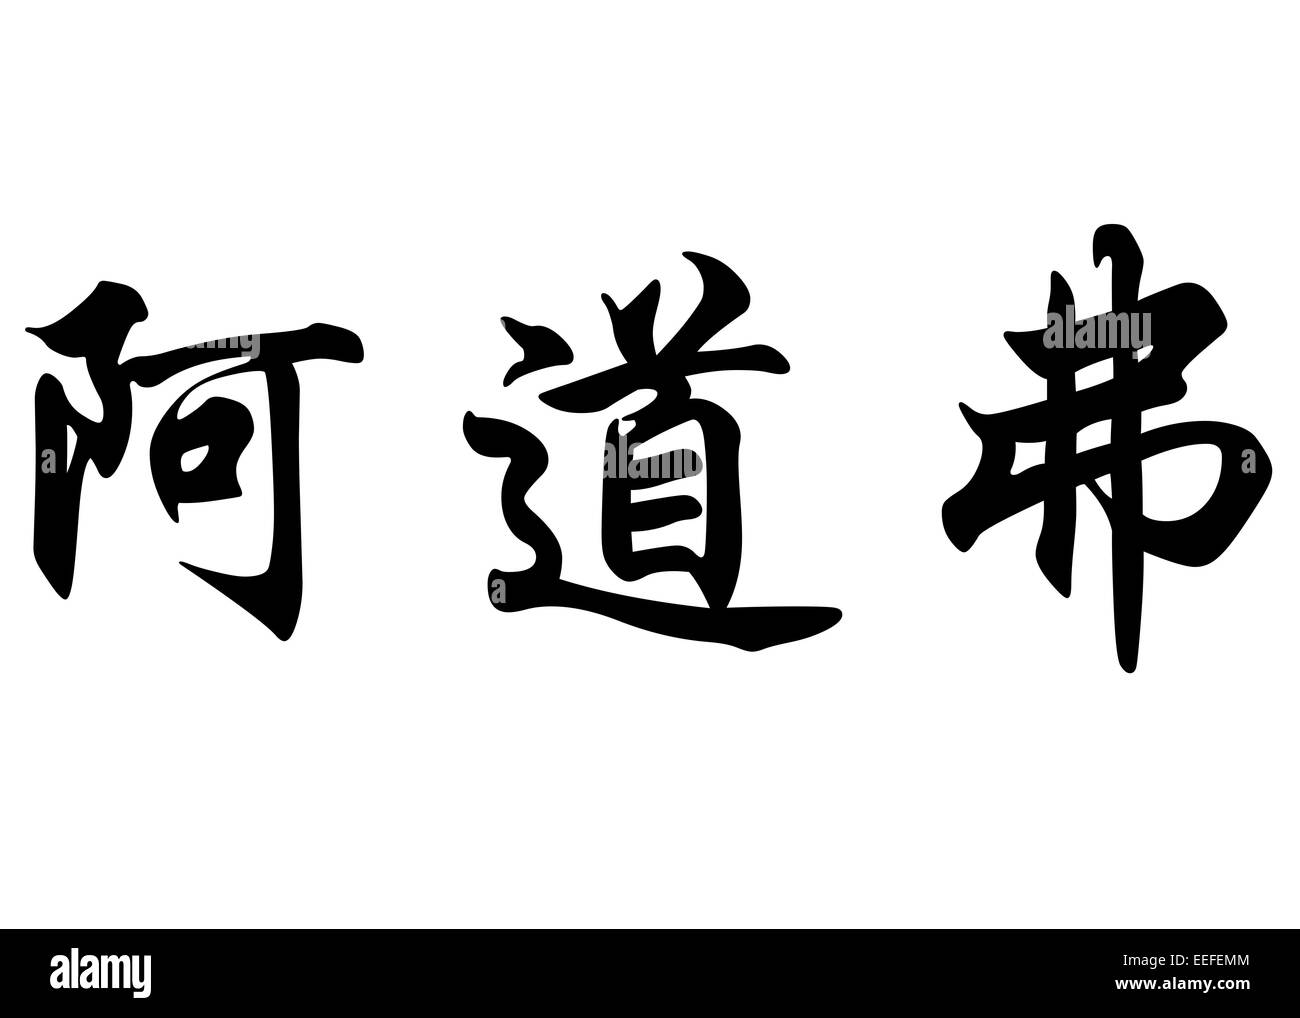 Japanese Characters Black And White Stock Photos Images Alamy